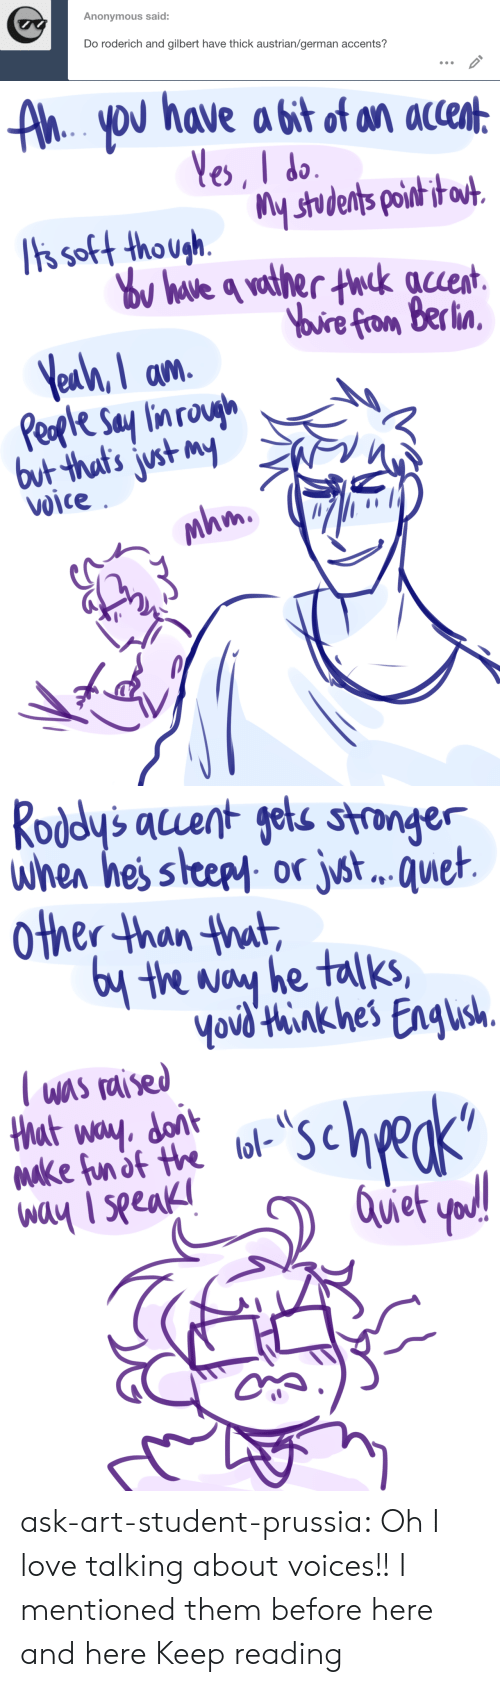 accents: Anonymous said:  Do roderich and gilbert have thick austrian/german accents?   AhYoU have a bit of an accent  Yes, I do  ts soft though.  Tis soft thoushstudents poih i  ou have q vather thck auent  Yuire from Berlin  Yeah, I am  Peple Say lin rough  but that's just my  Voice  mhm   Roddy's acuent gets stronger  when hes steepy or jst.. . quet  other than that  6y the way he talks,  Yovd'think hes Engush  T was raised  that way. dont  Make fun of the lol-  way I seeak  scheks  Quet yod! ask-art-student-prussia:  Oh I love talking about voices!! I mentioned them before here and here Keep reading